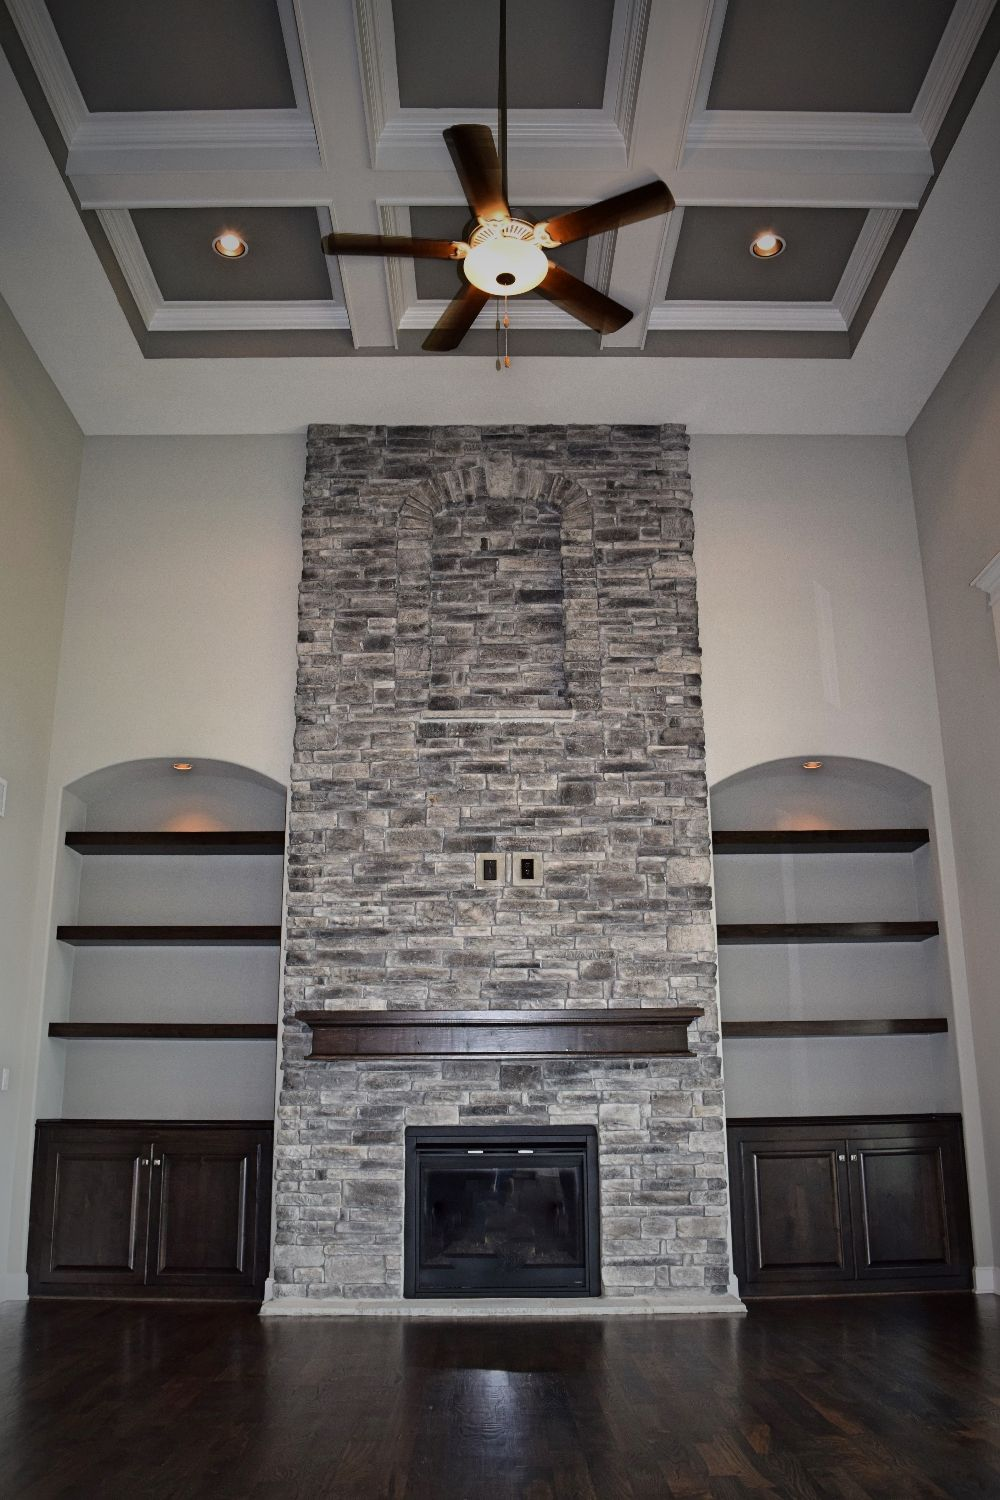 Pin By Bickimer Homes On Model Homes: 2 Story Great Room, Coffered Ceiling, Stone Fireplace